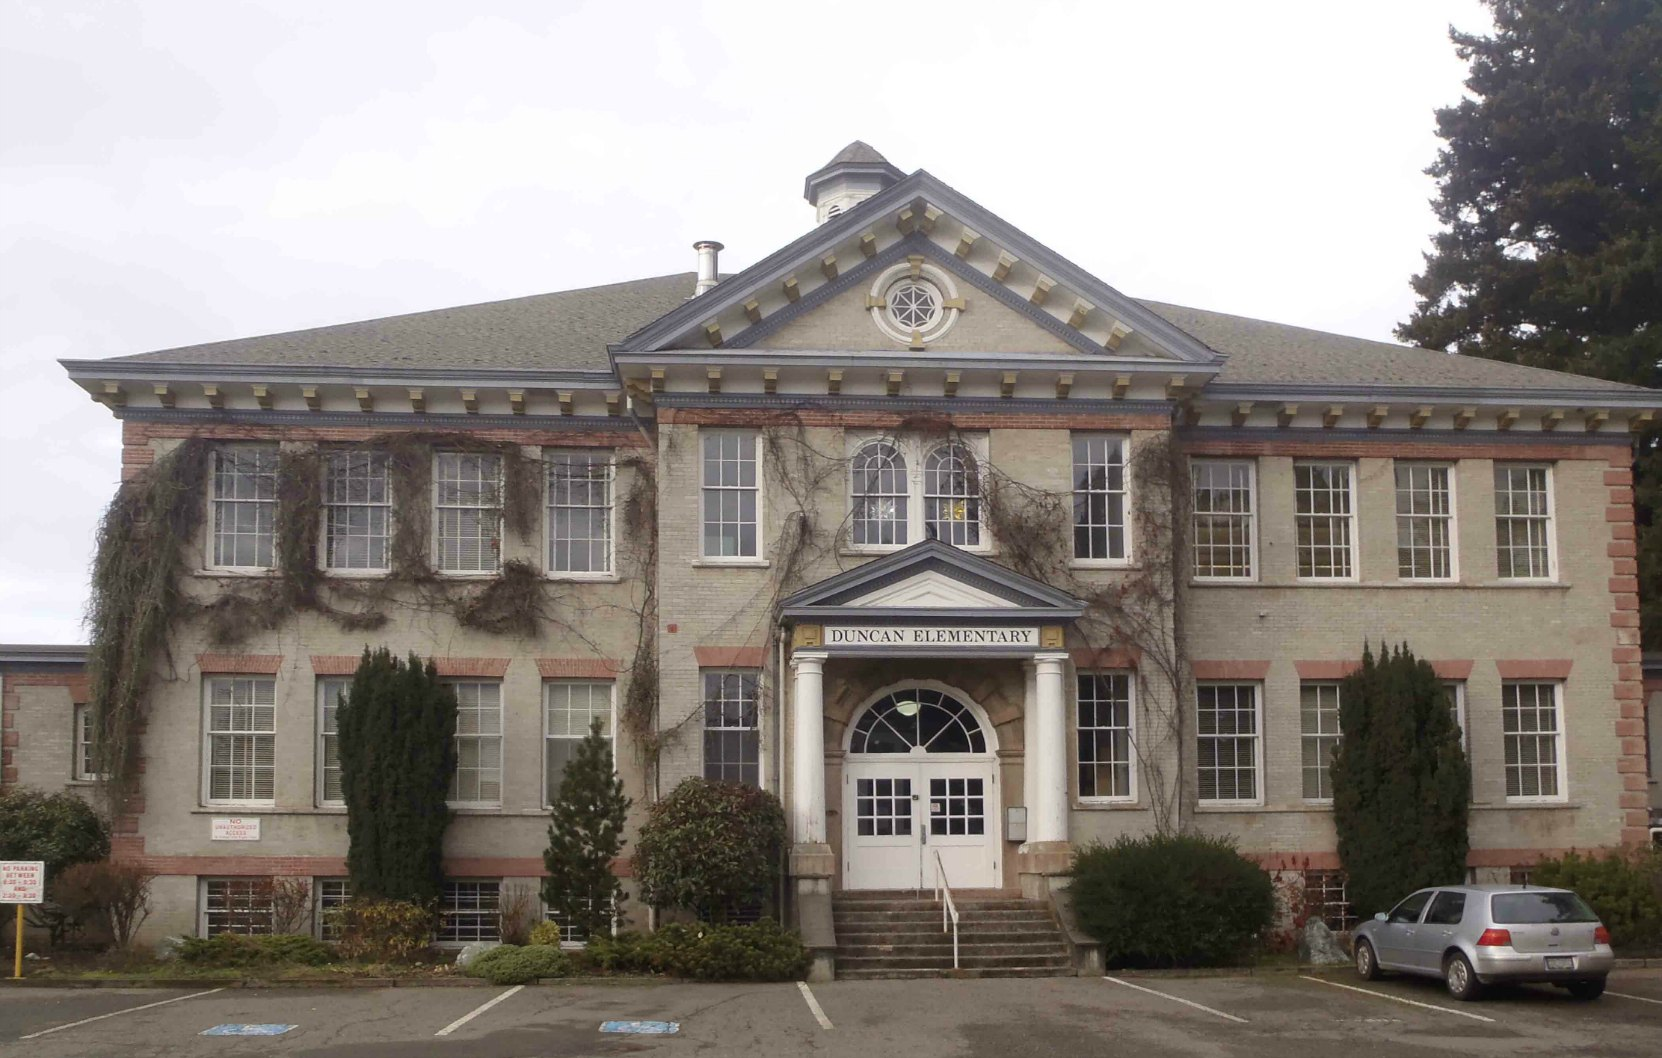 Duncan Elementary School, front elevation